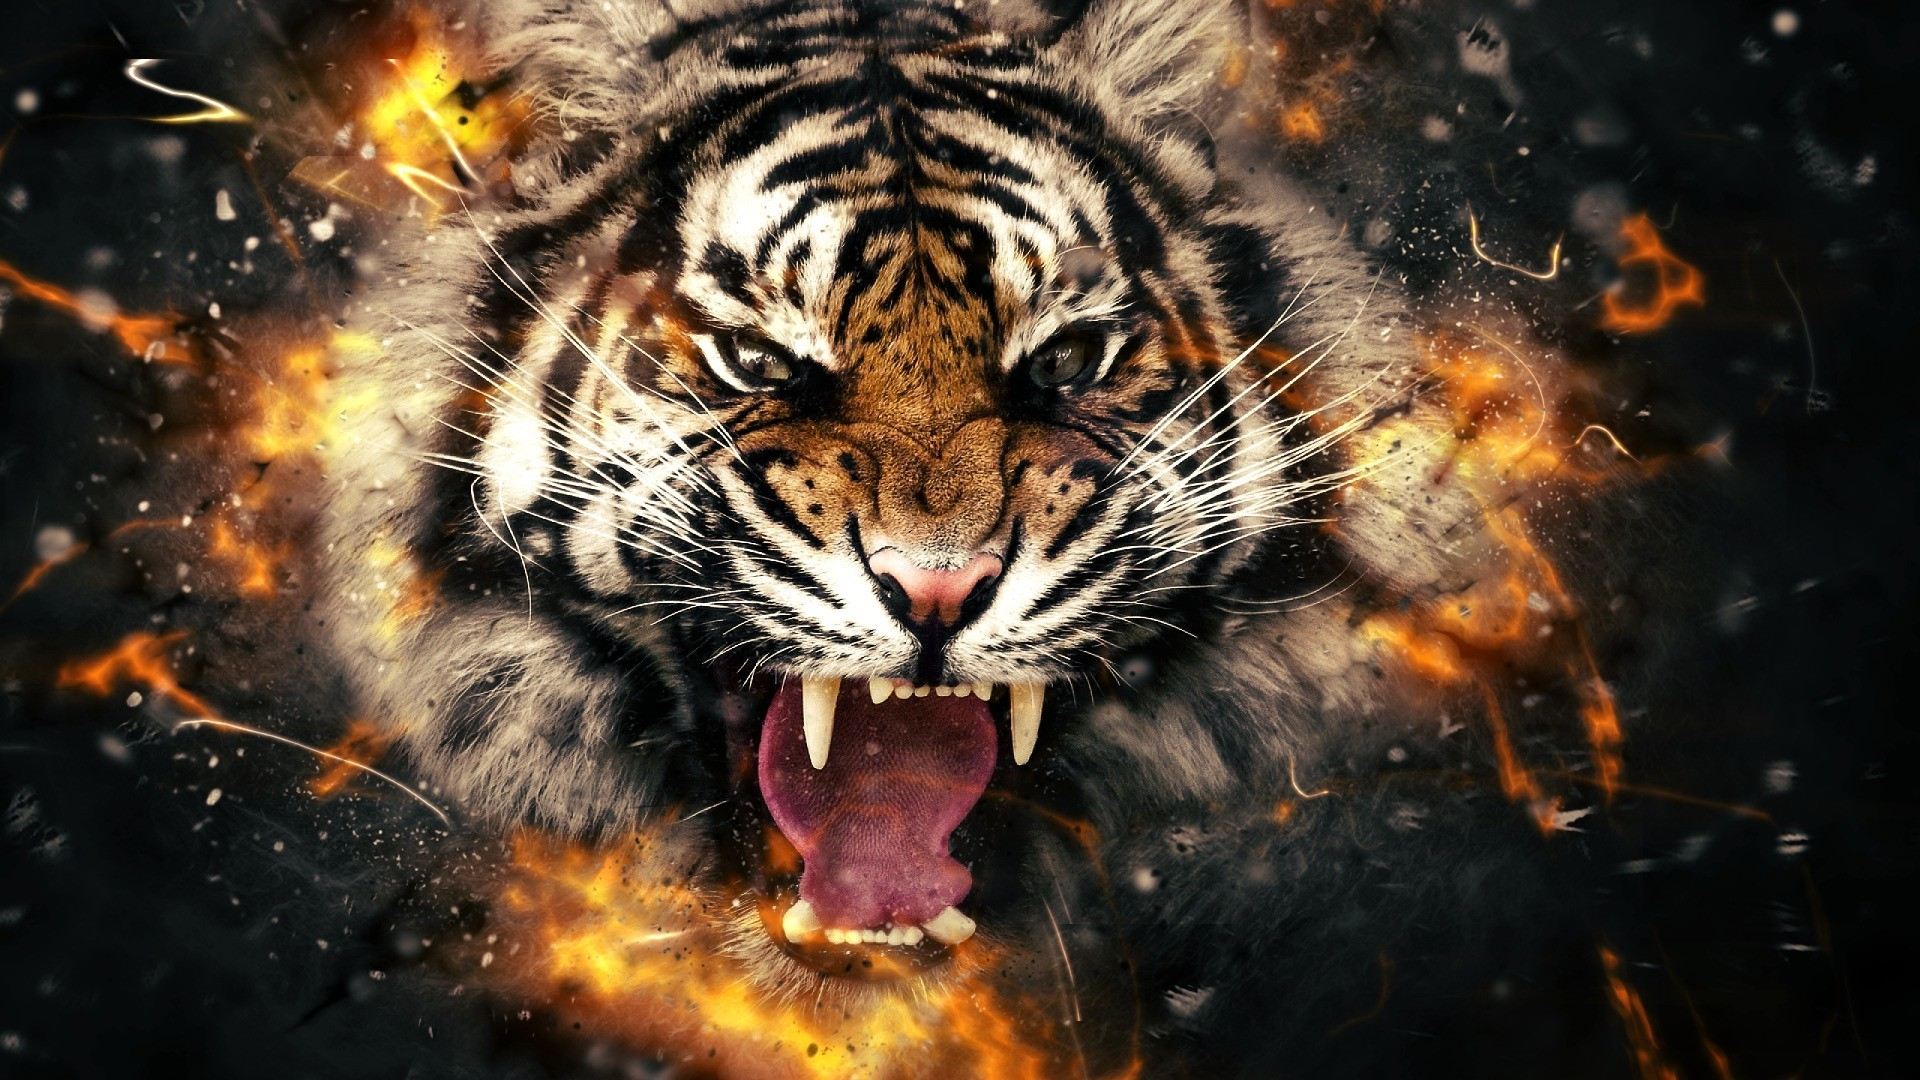 Tiger Face Wallpaper ·①